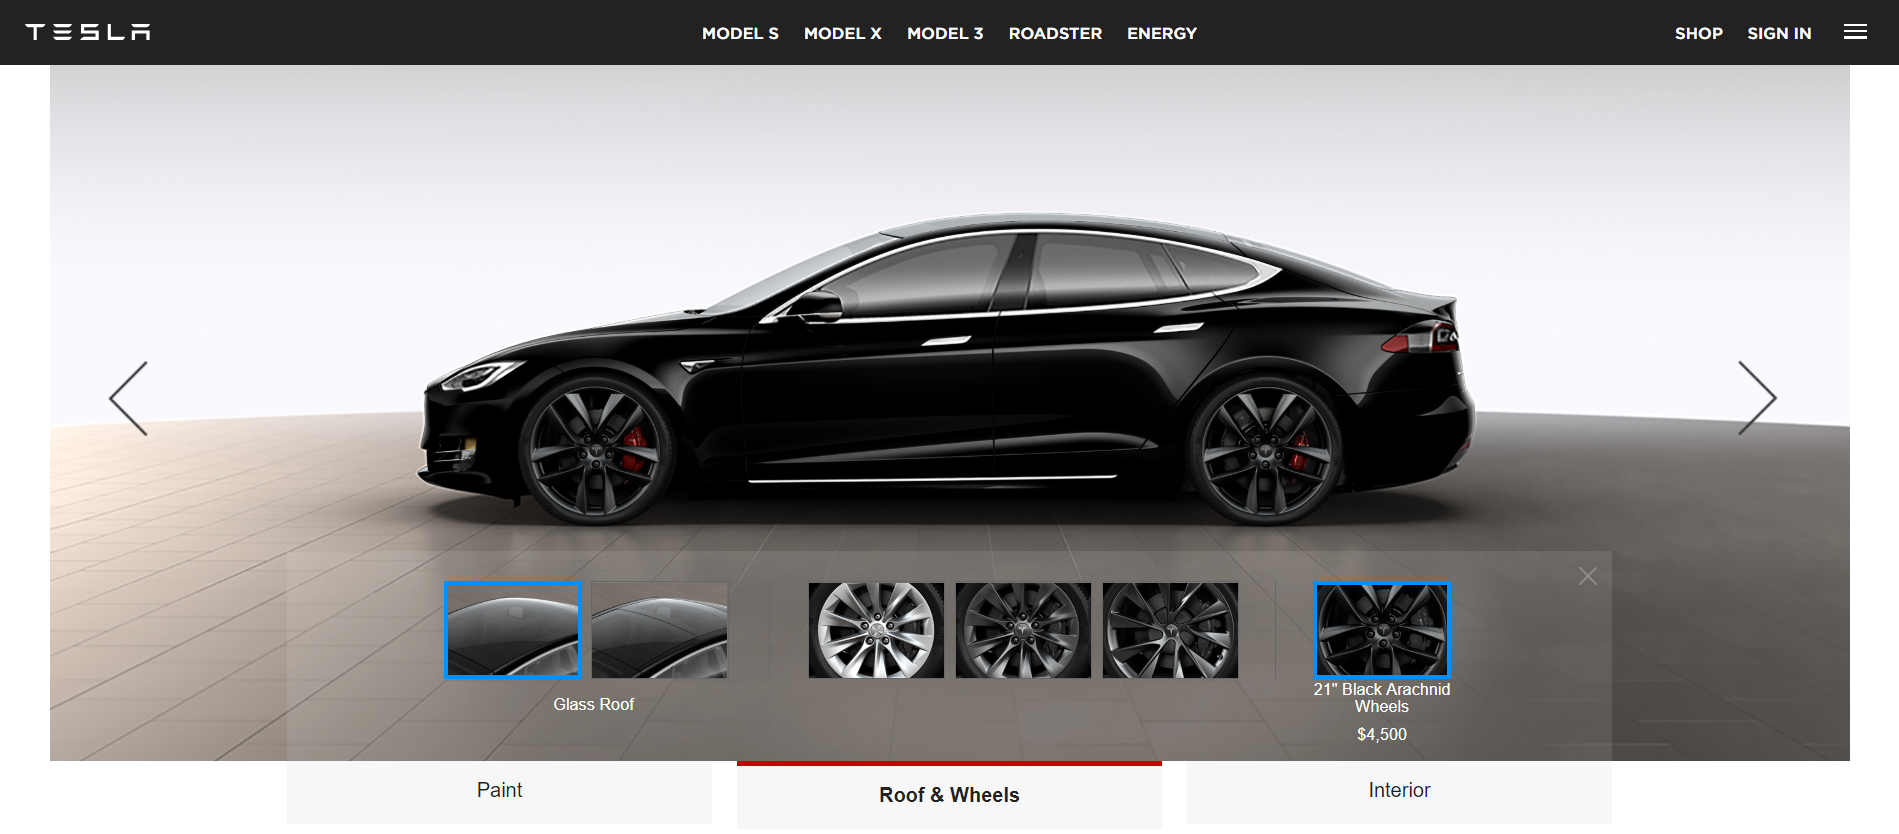 hight resolution of tesla adds black arachnid wheel and ventilated seats to p100d trim levels